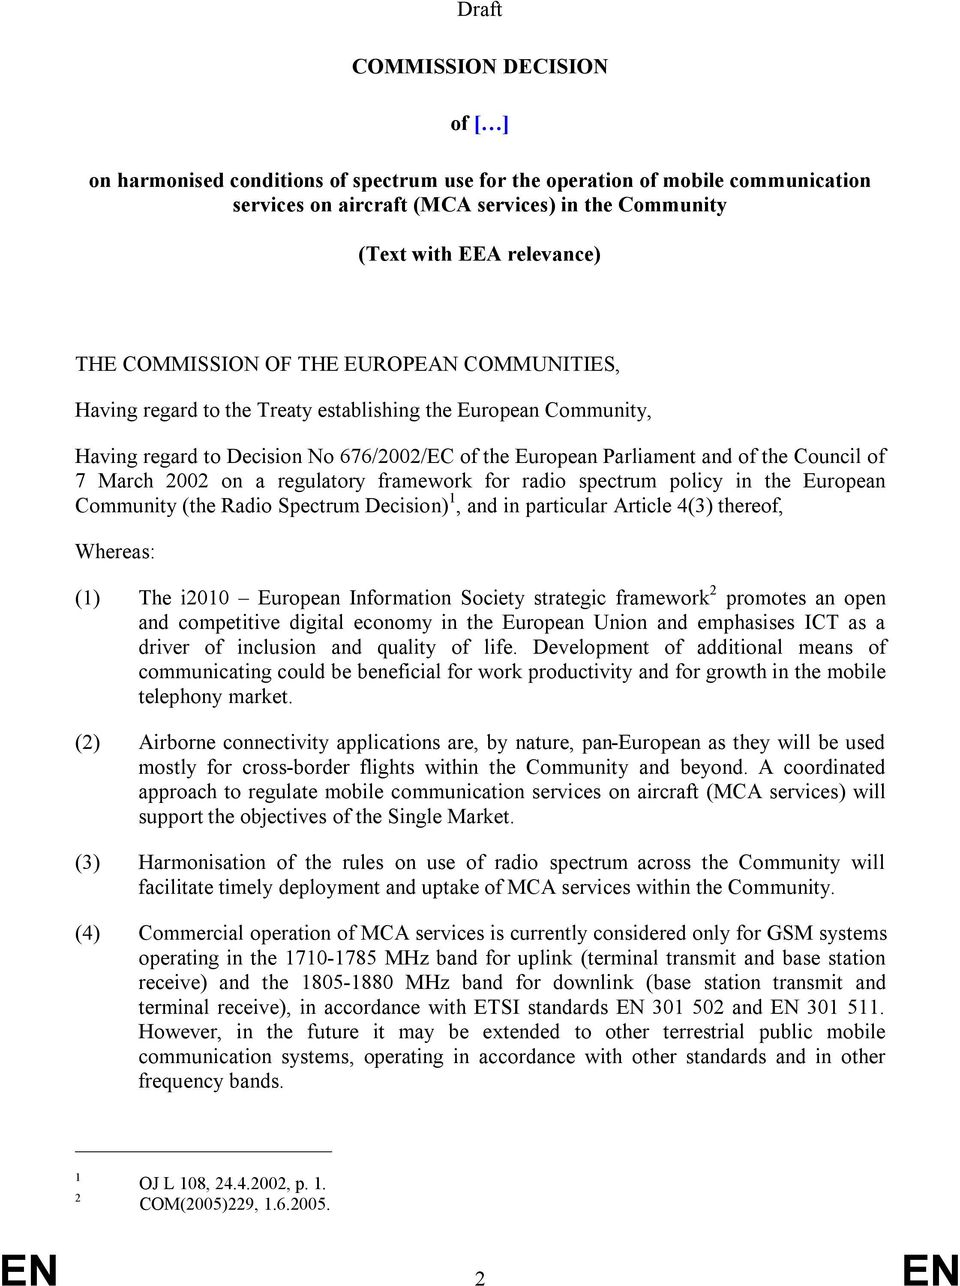 March 2002 on a regulatory framework for radio spectrum policy in the European Community (the Radio Spectrum Decision) 1, and in particular Article 4(3) thereof, Whereas: (1) The i2010 European